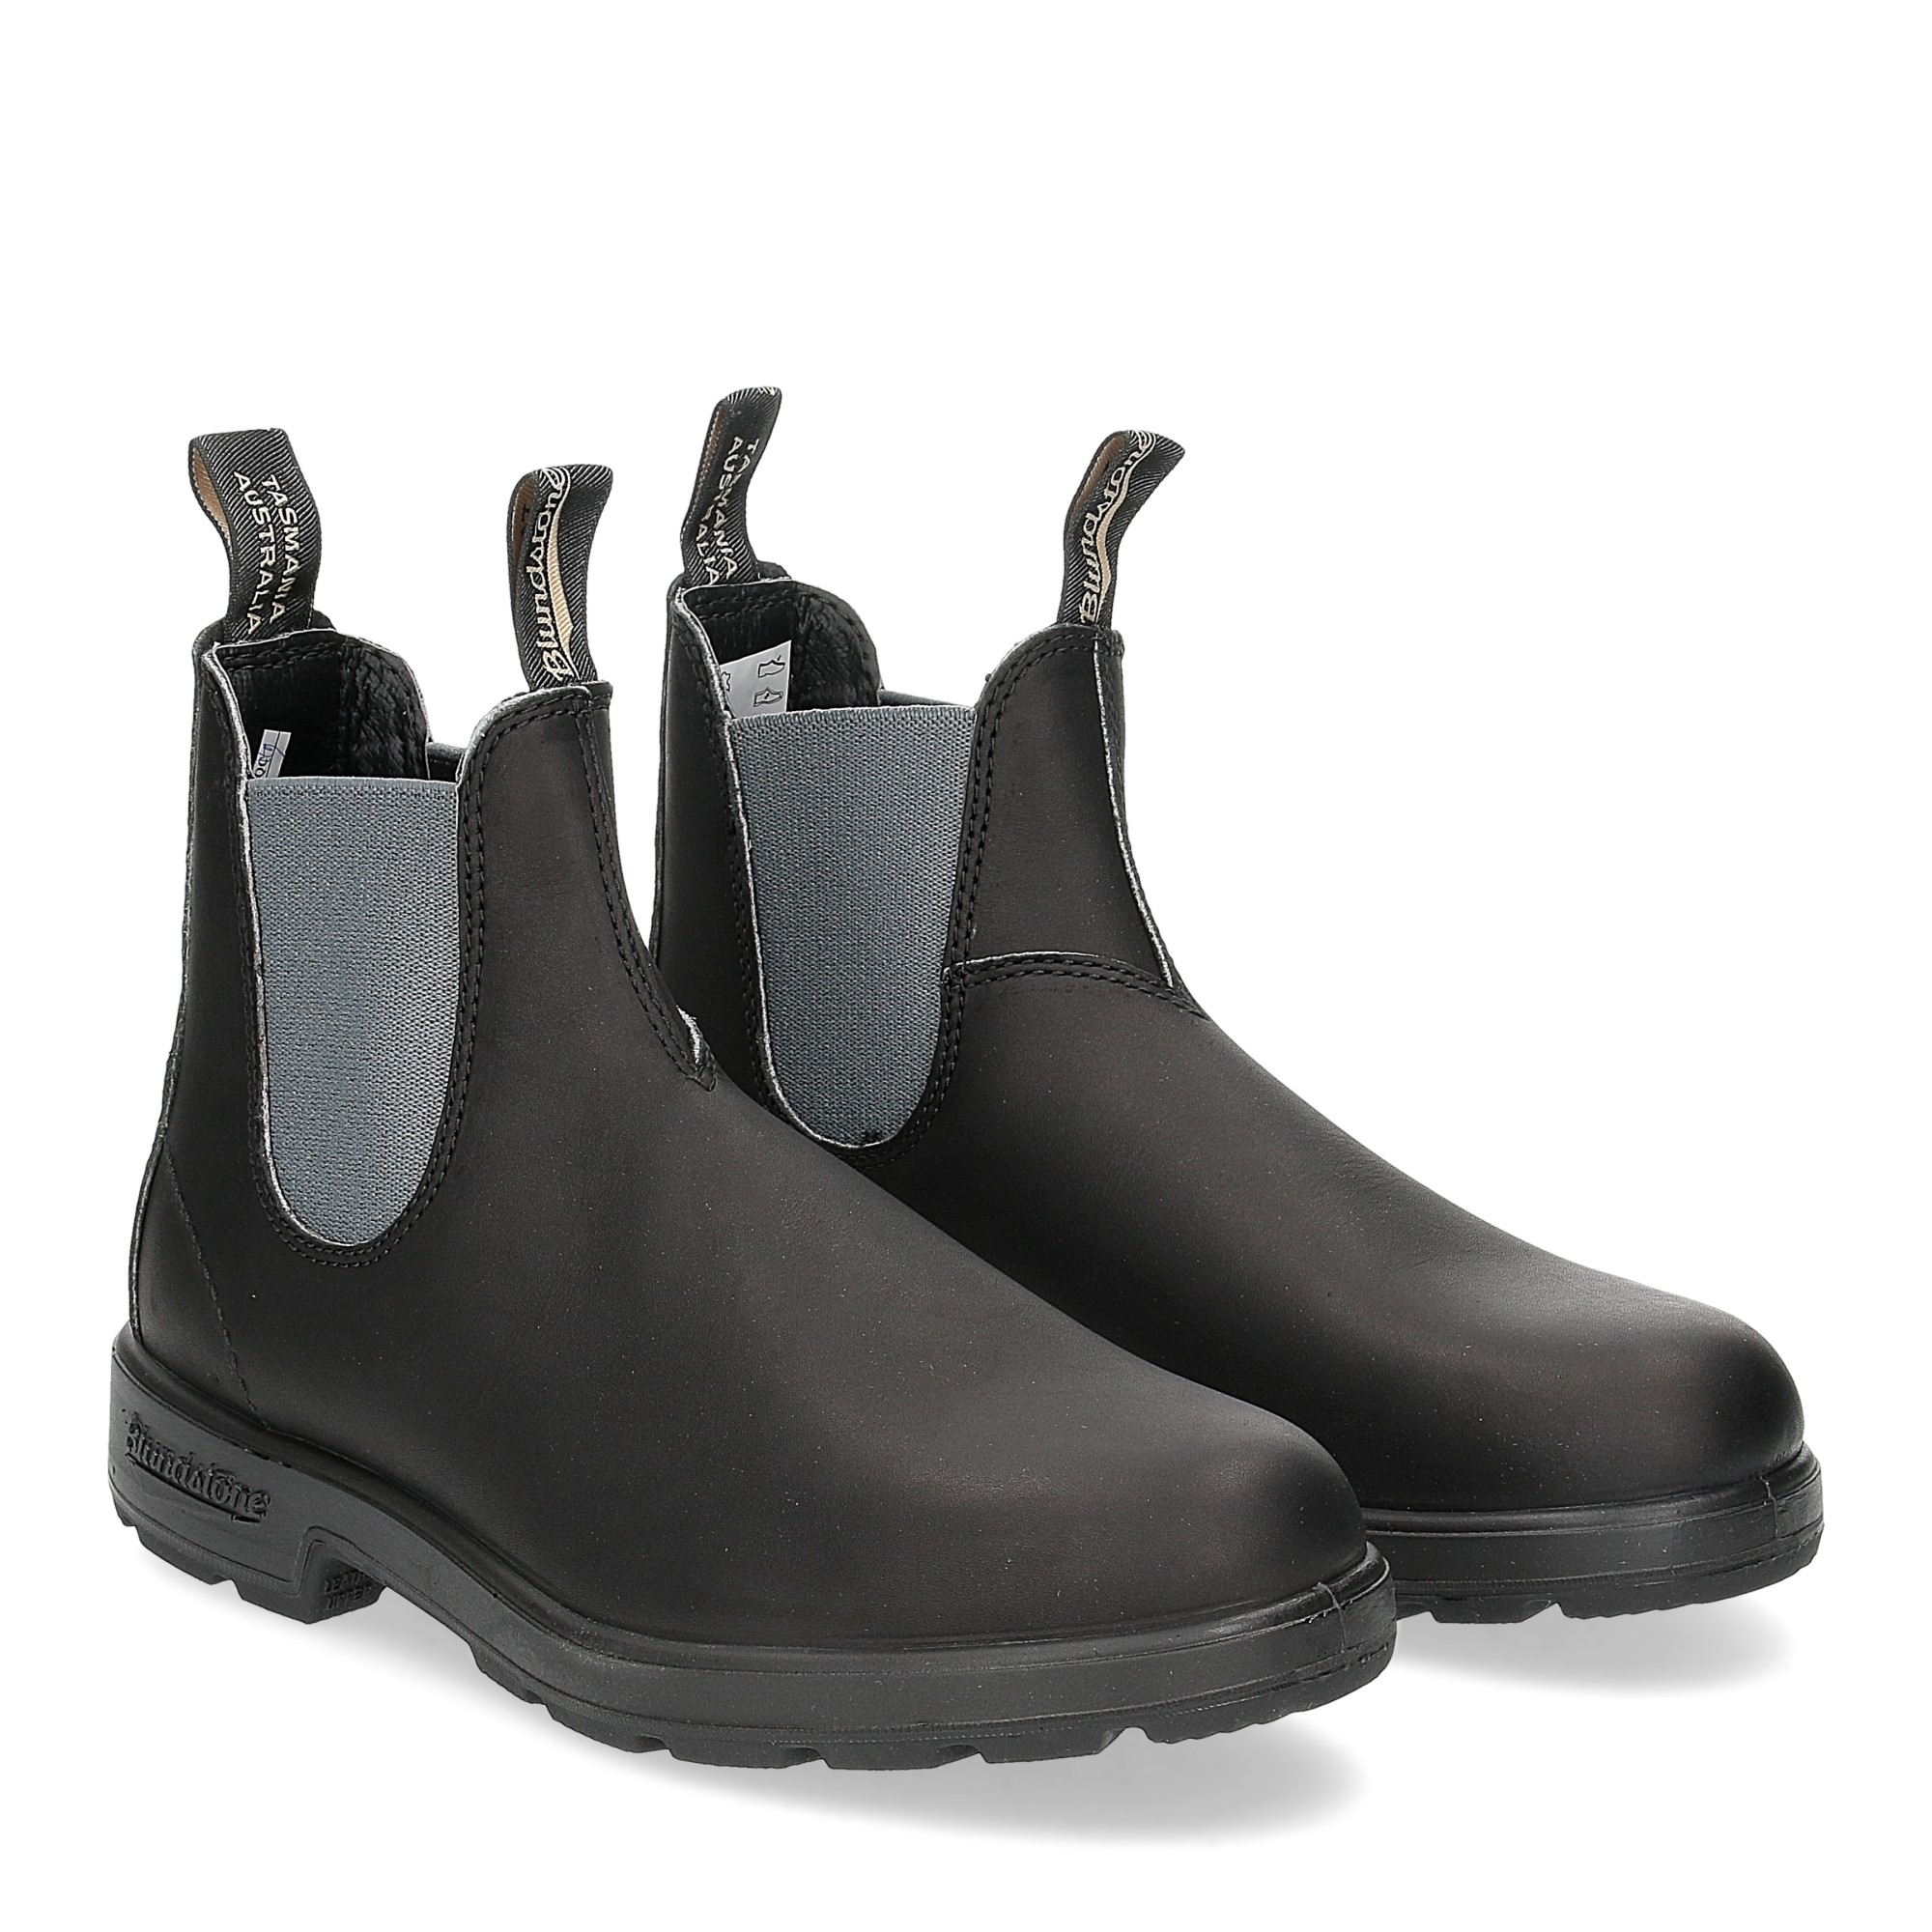 Blundstone 577 black grey